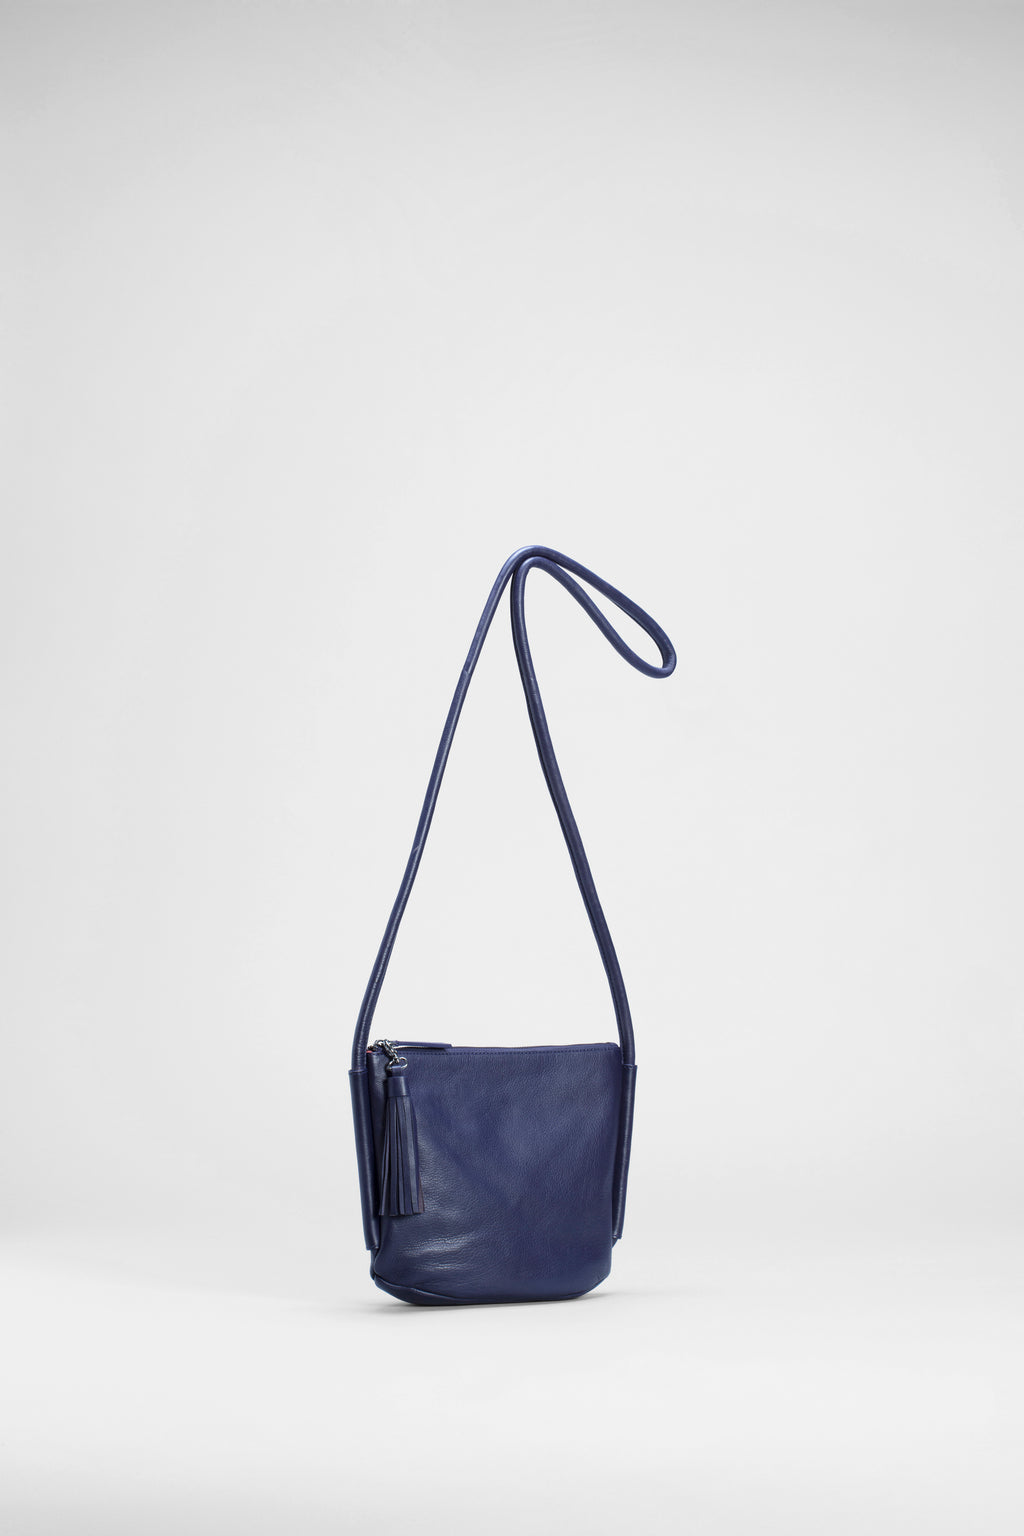 ELK FORBI SMALL BAG